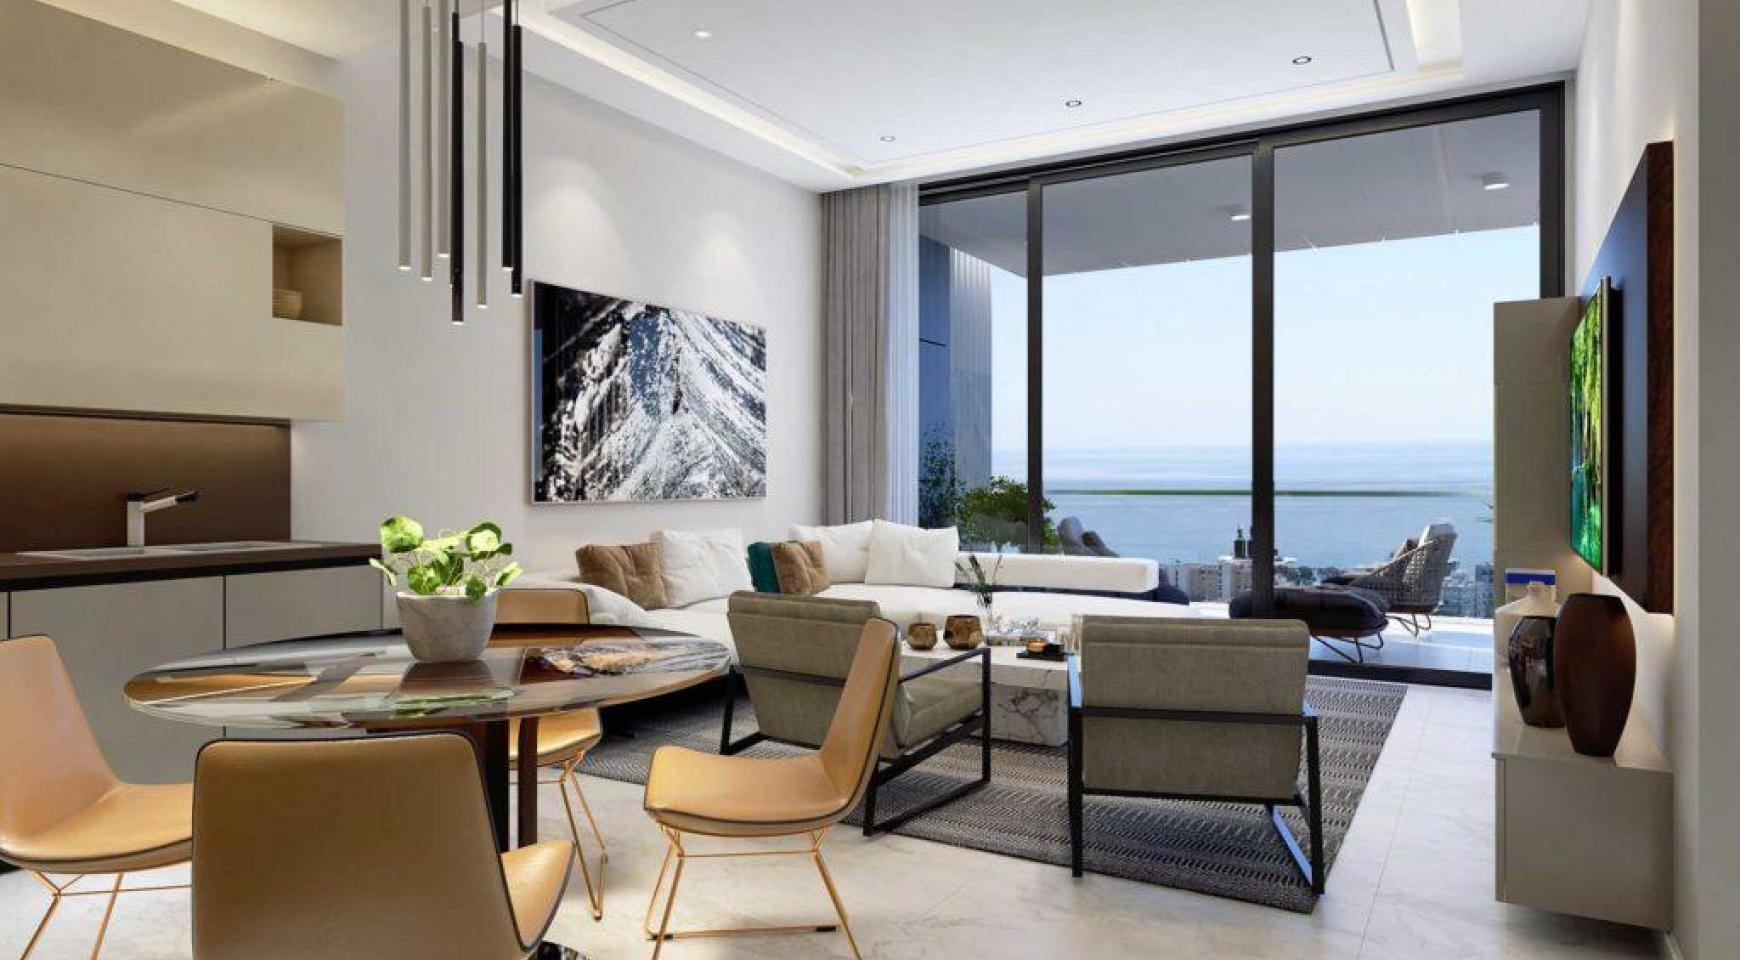 Contemporary 2 Bedroom Apartment with Sea Views in a Luxurious Complex - 4